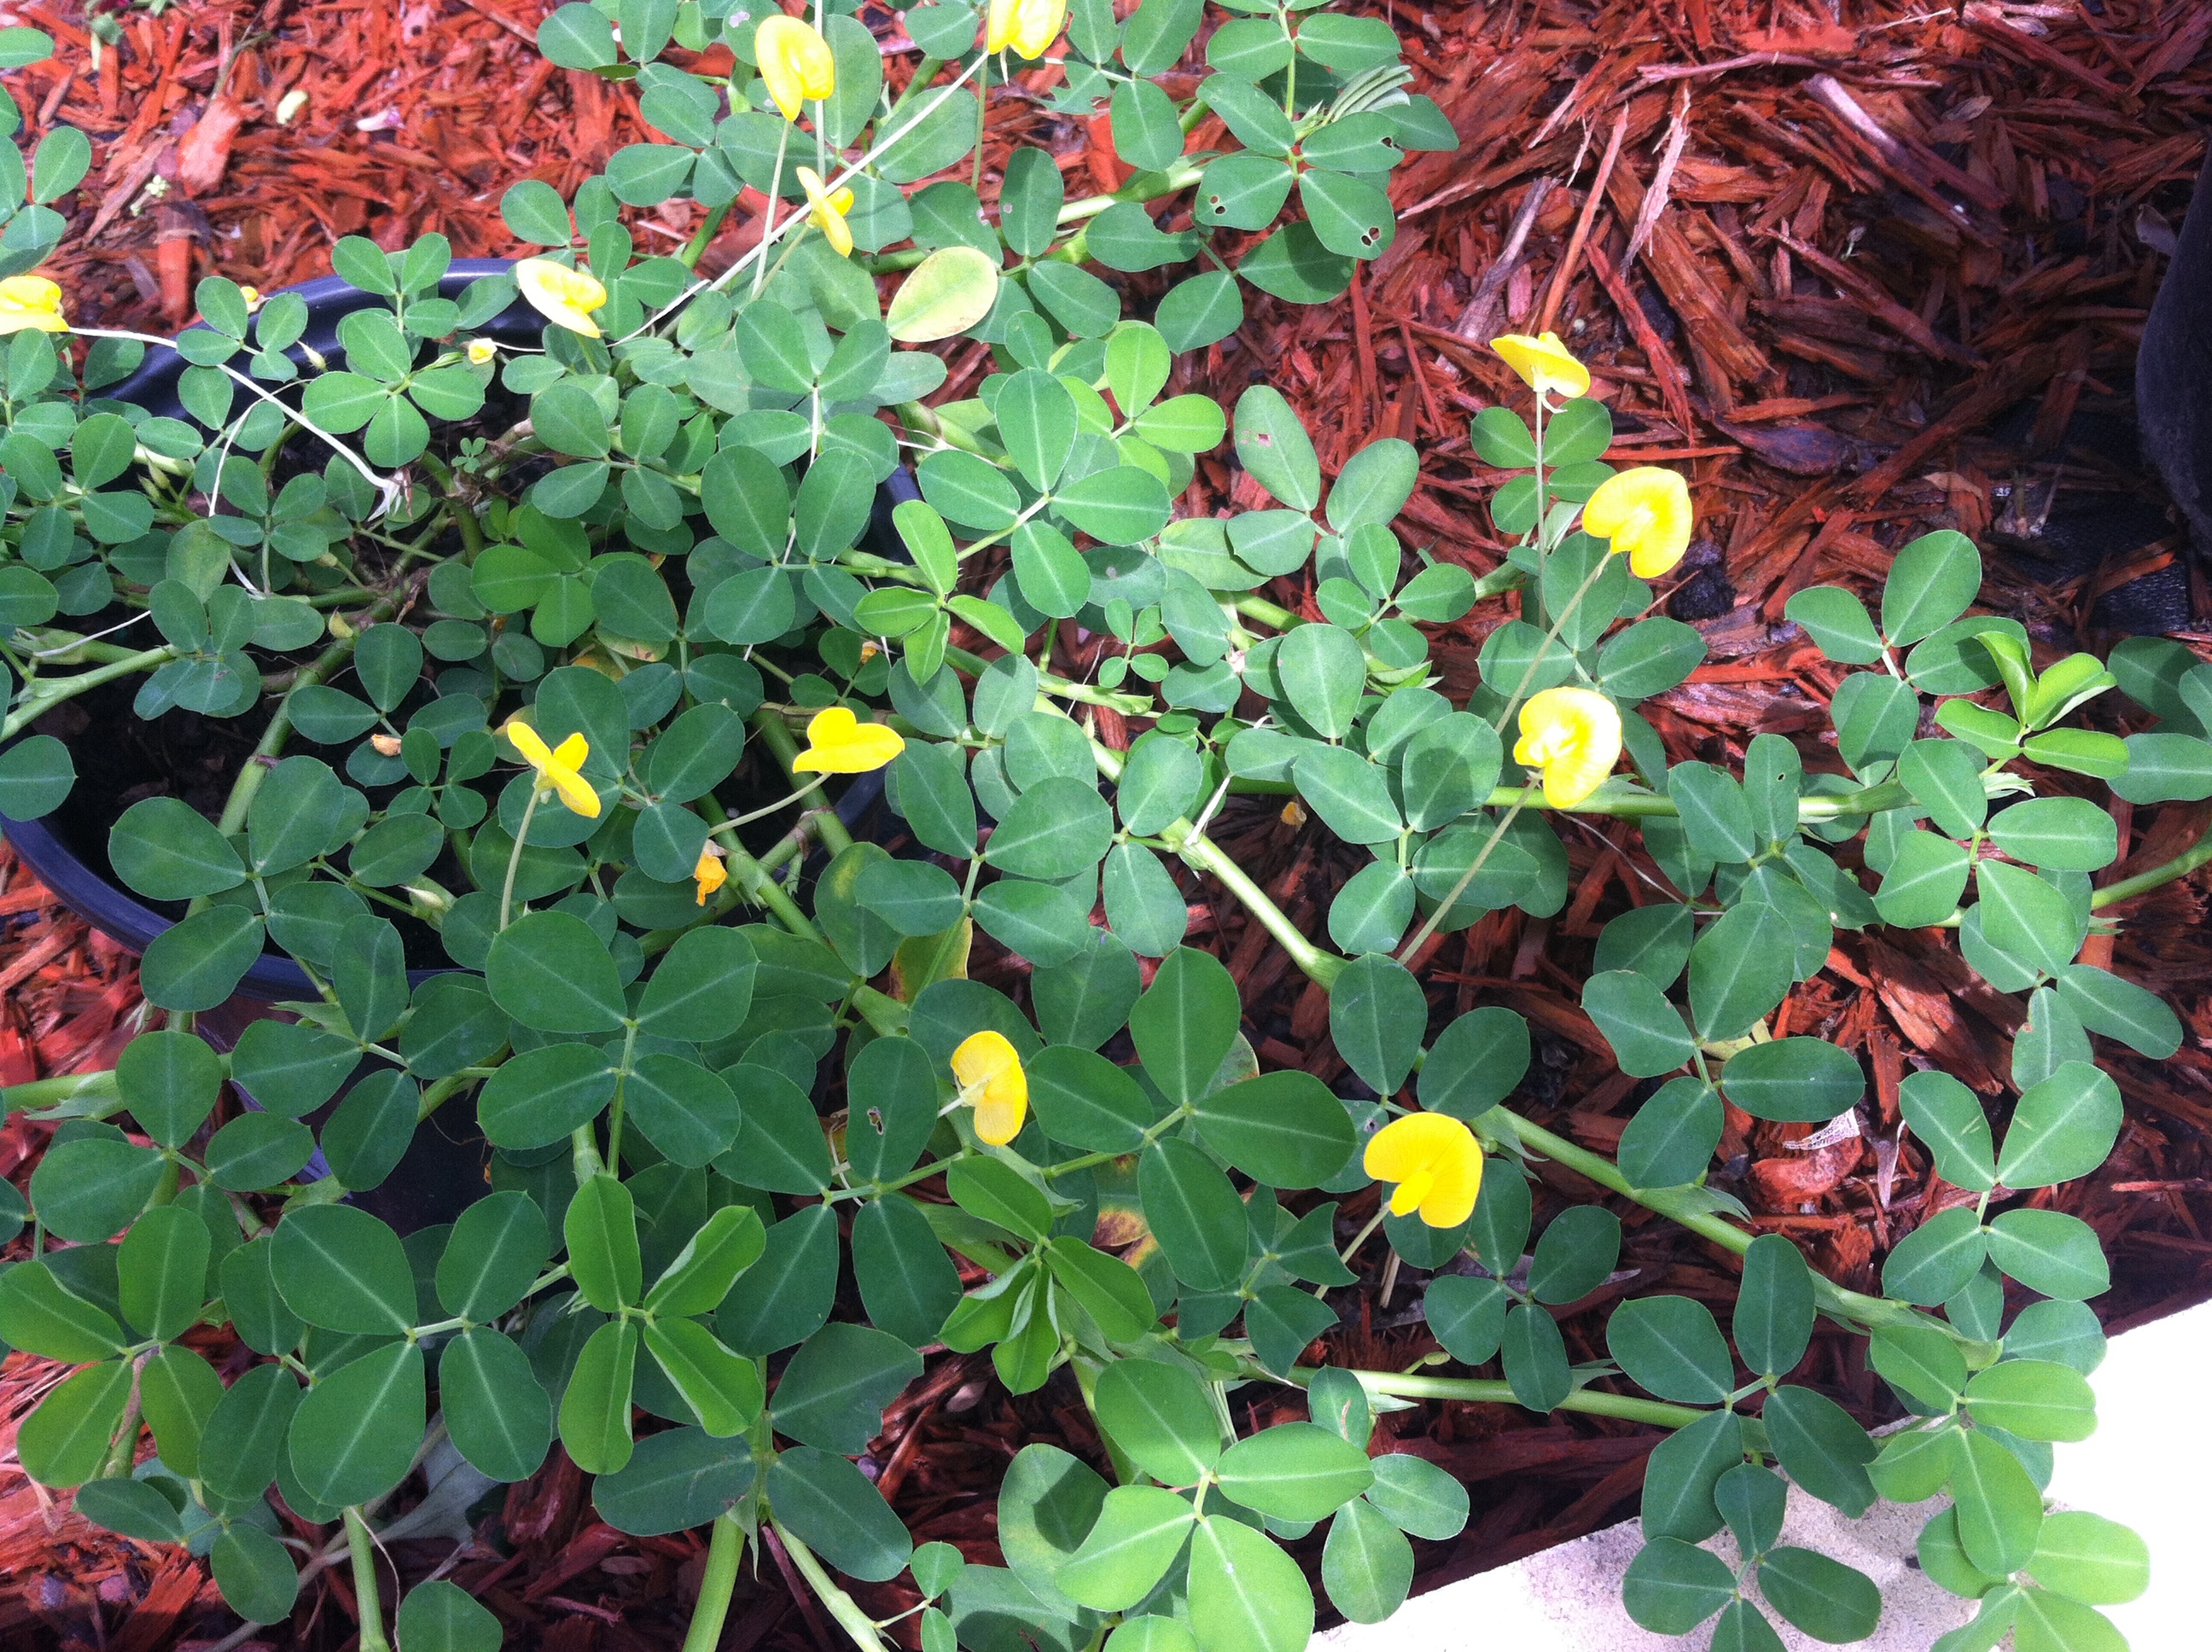 The Good News: Pinto Peanut (arachis Pinto) Is A Great Plant To Use For  Adding Nitrogen To The Soil It Forms A Mat That Suffocates Weeds, And The  Little